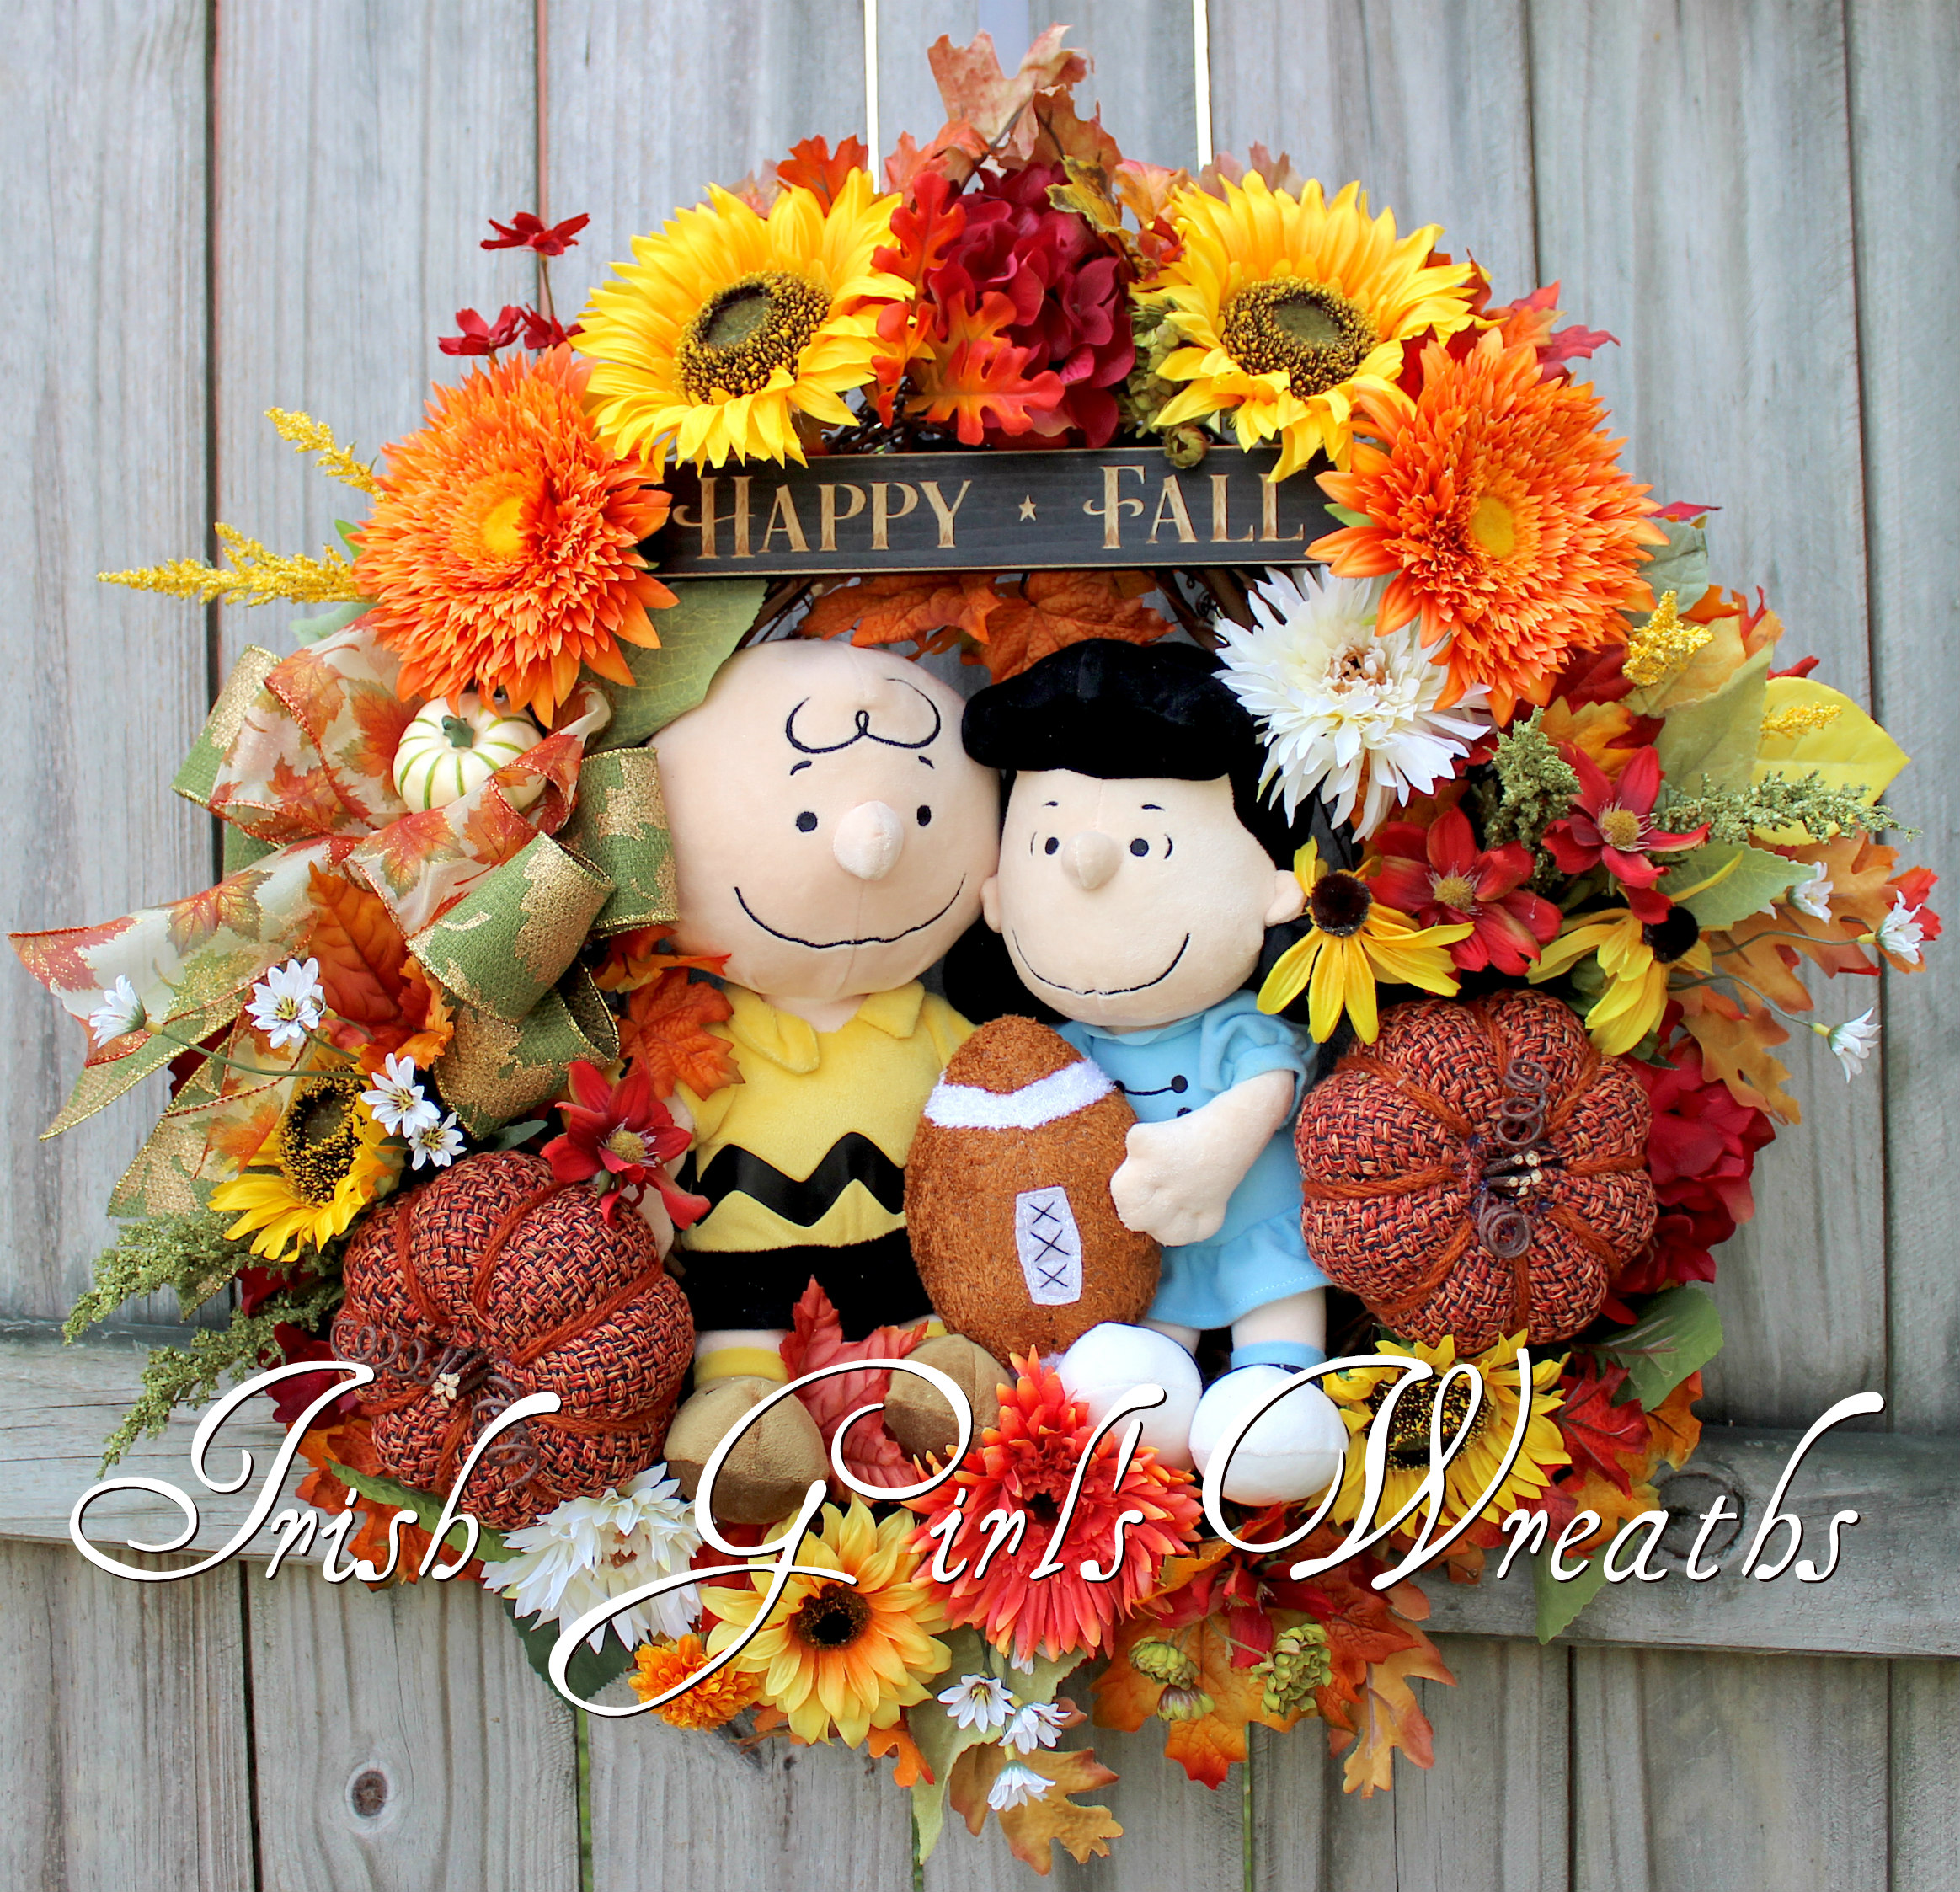 Peanuts Lucy and Charlie Brown Fall Football Wreath